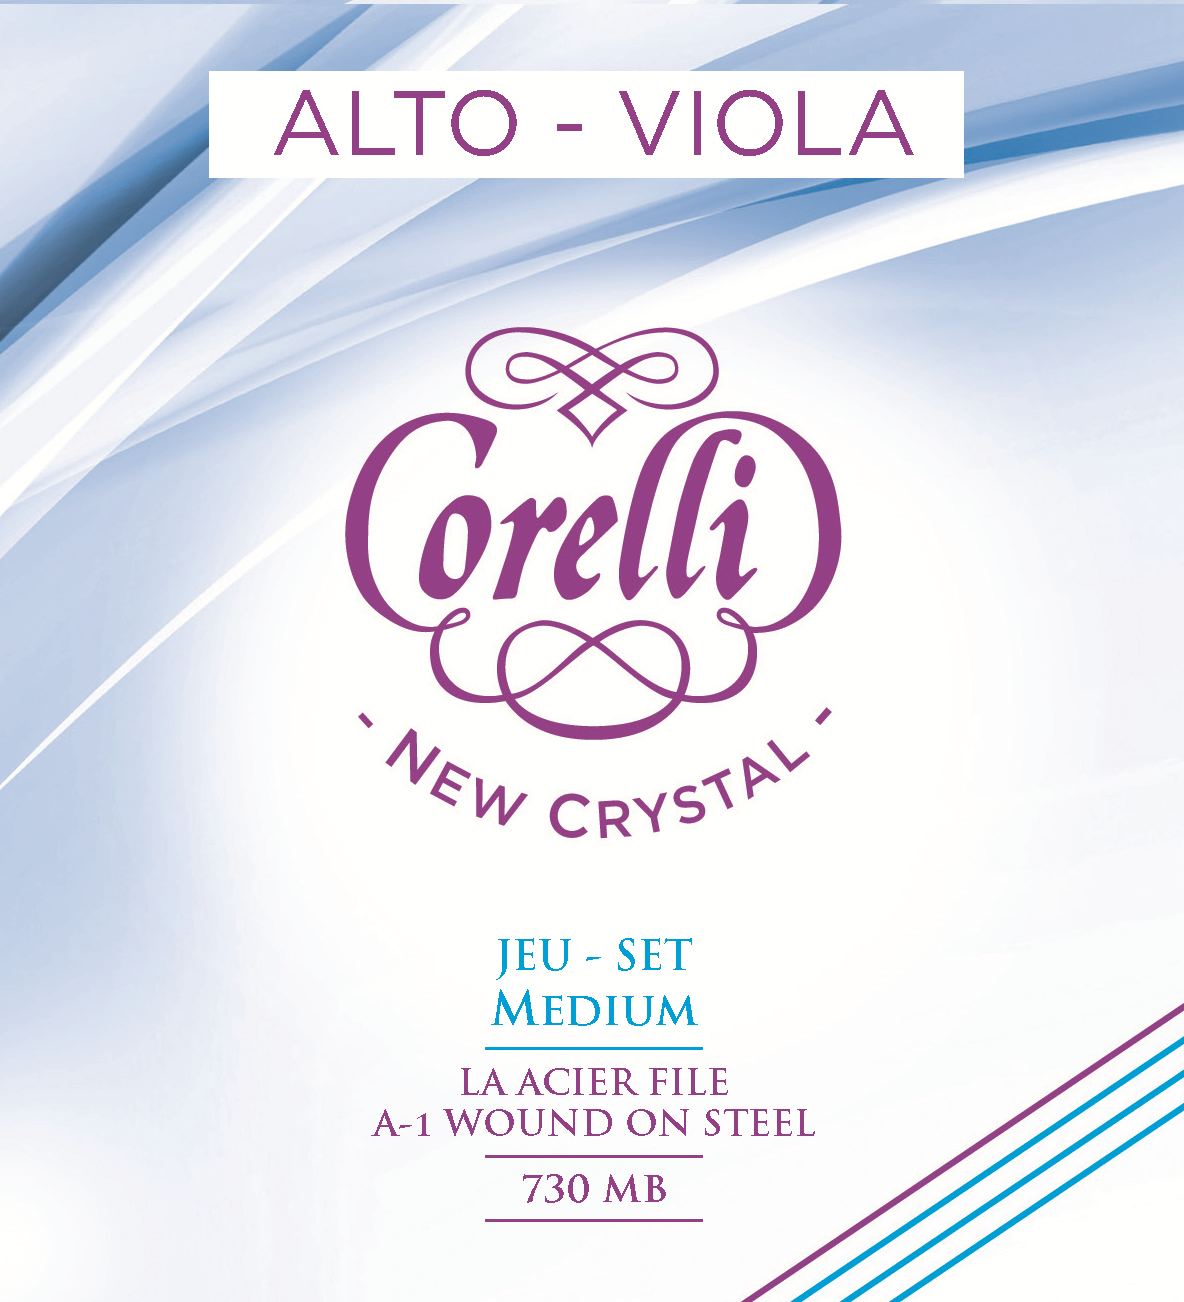 CORELLI NEW CRYSTAL MEDIUM 730MB ALTO